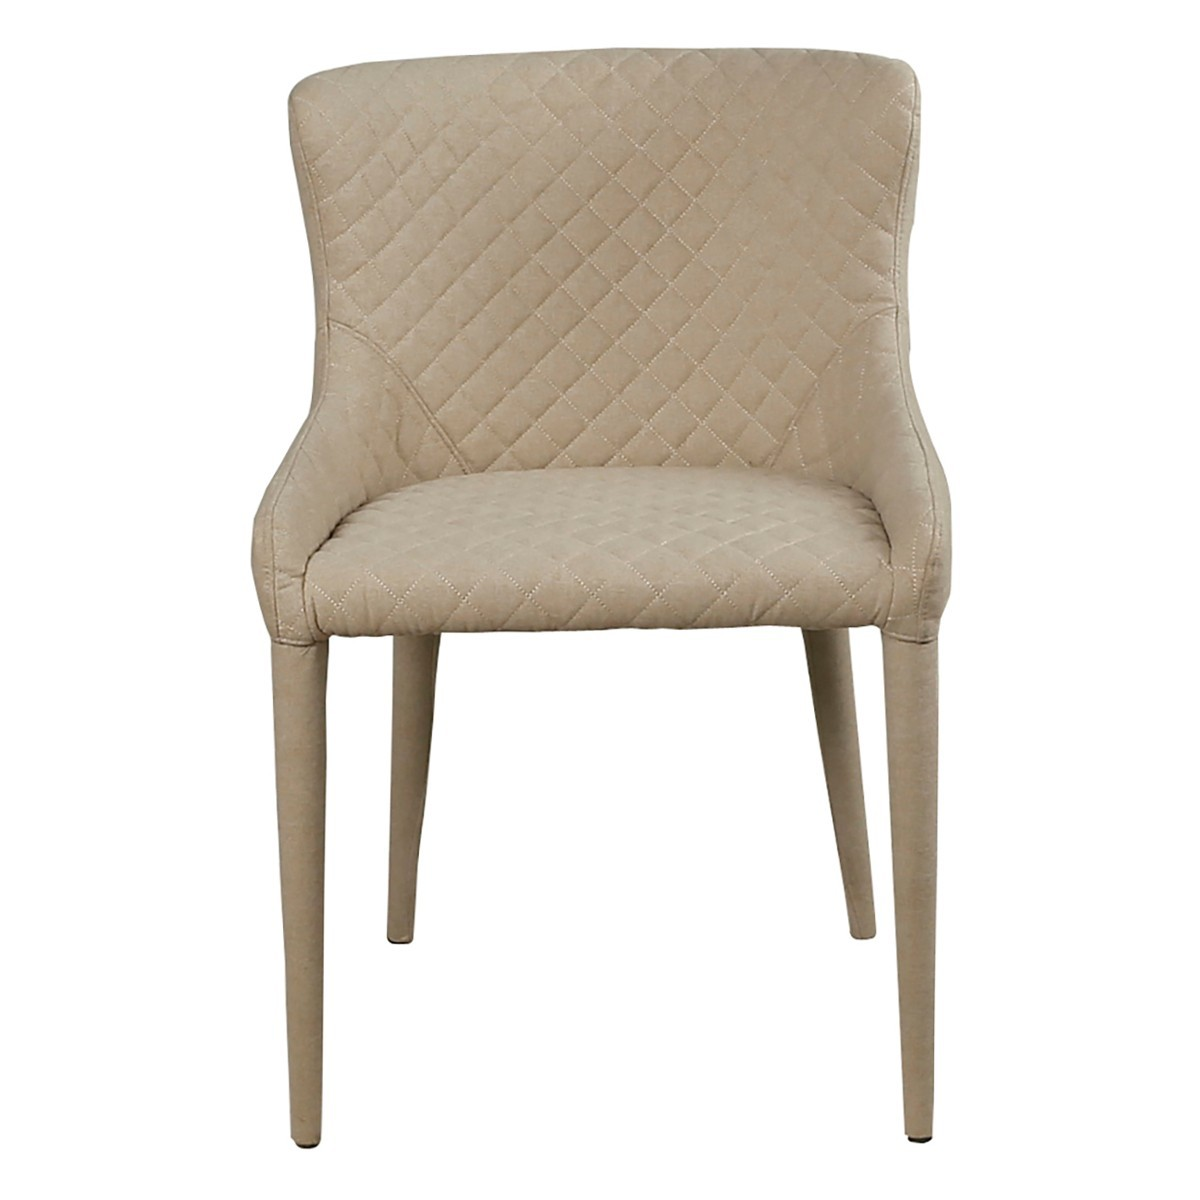 Pretis Commercial Grade Fabric Dining Chair, Bone